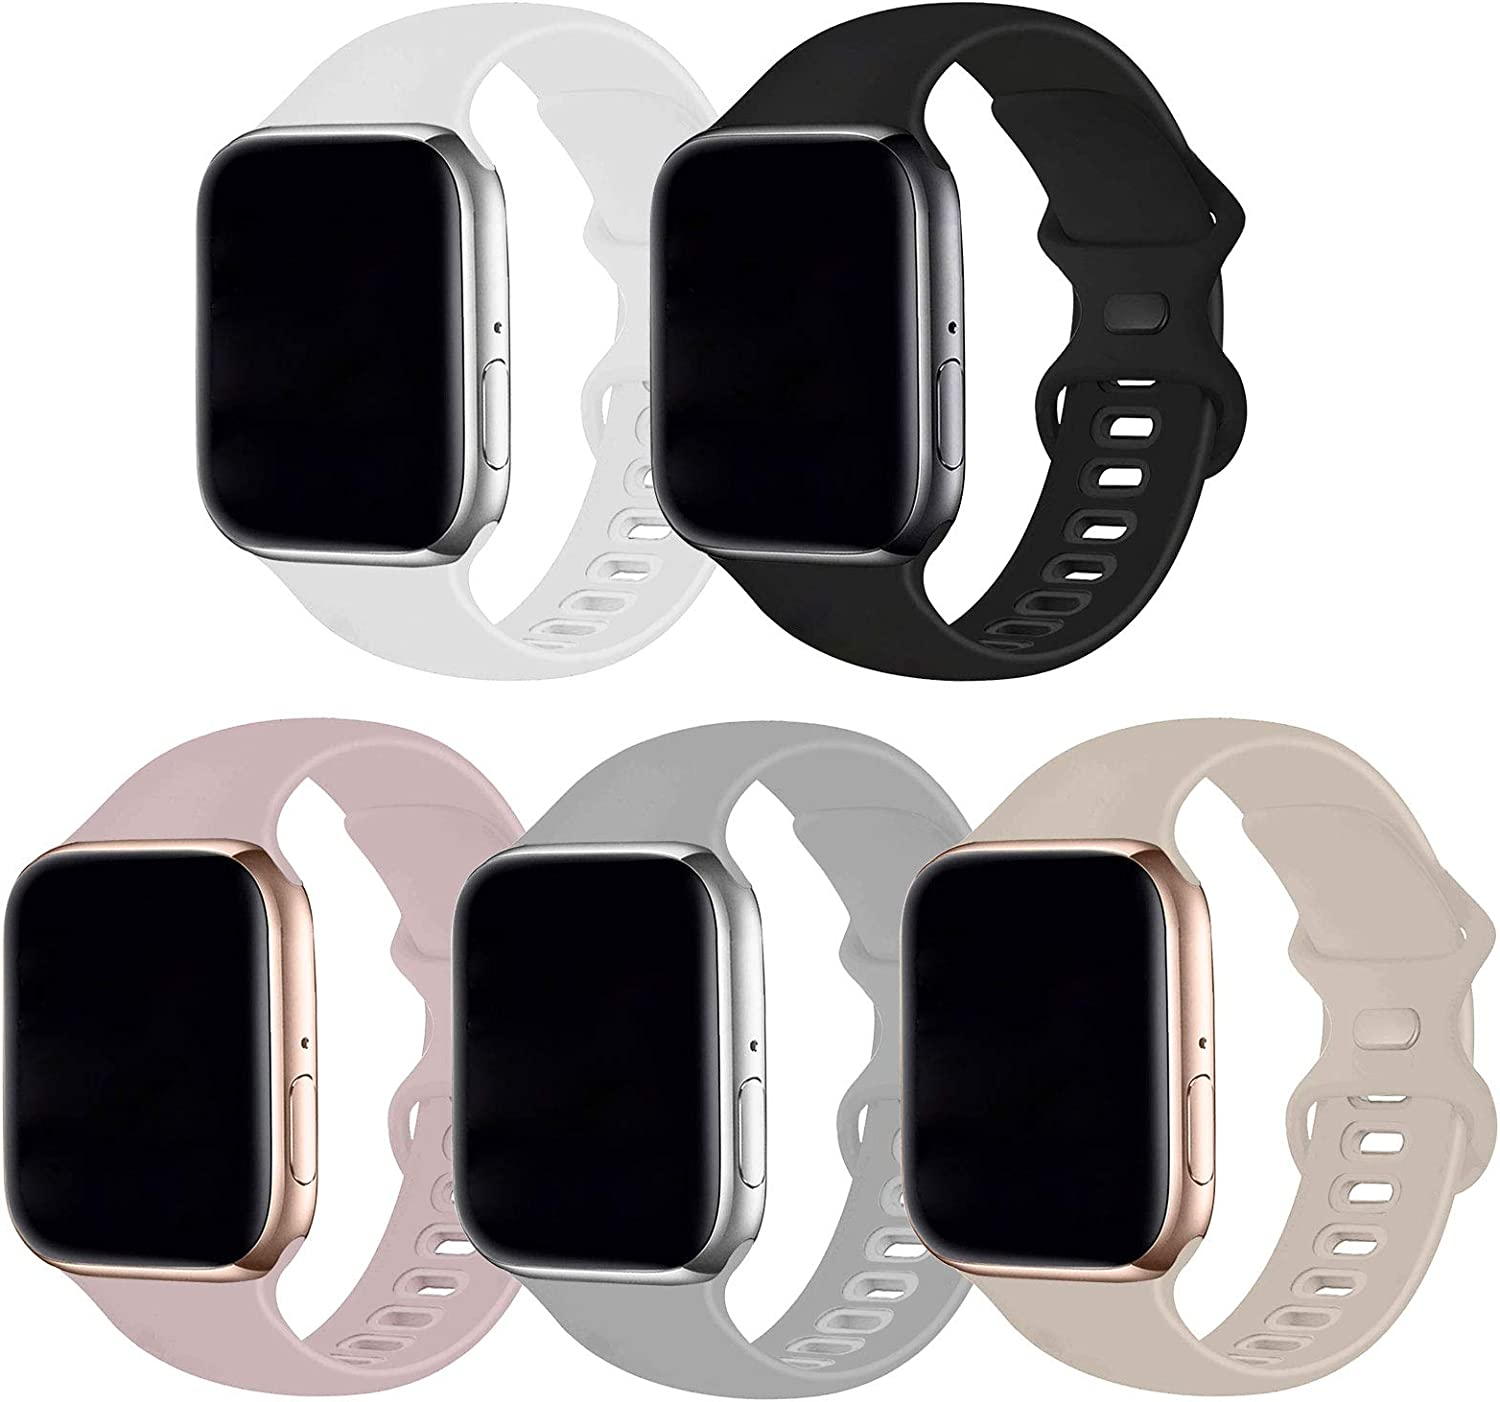 Bifeiyo 5 Pack Compatible with Apple Watch Band 42mm 44mm ML,Soft Silicone Sport Replacement Straps Compatible for iWatch Series6/5/4/3/2/1/SE(Pink Sand/Black/White/Fog/Stone)